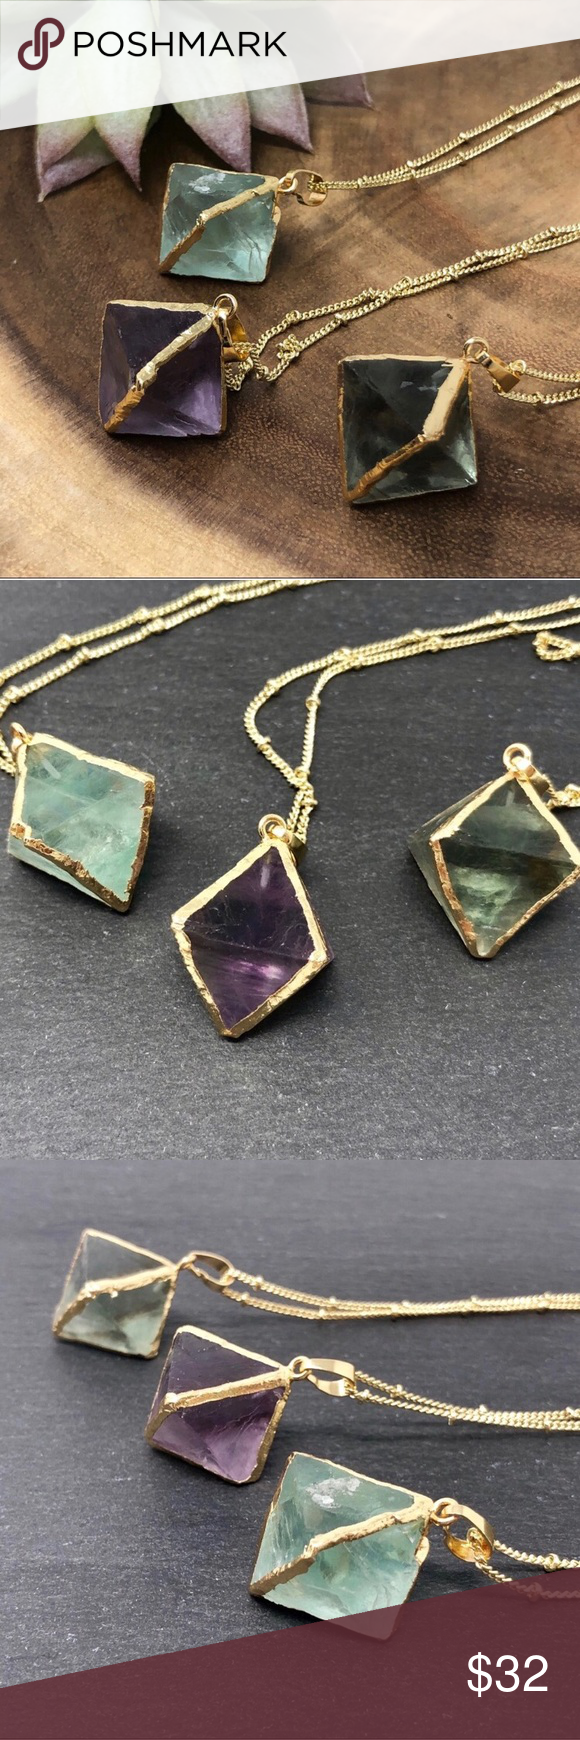 NEW! 🌟Boho Fluorite Crystal Necklace Pretty boho 18k gold